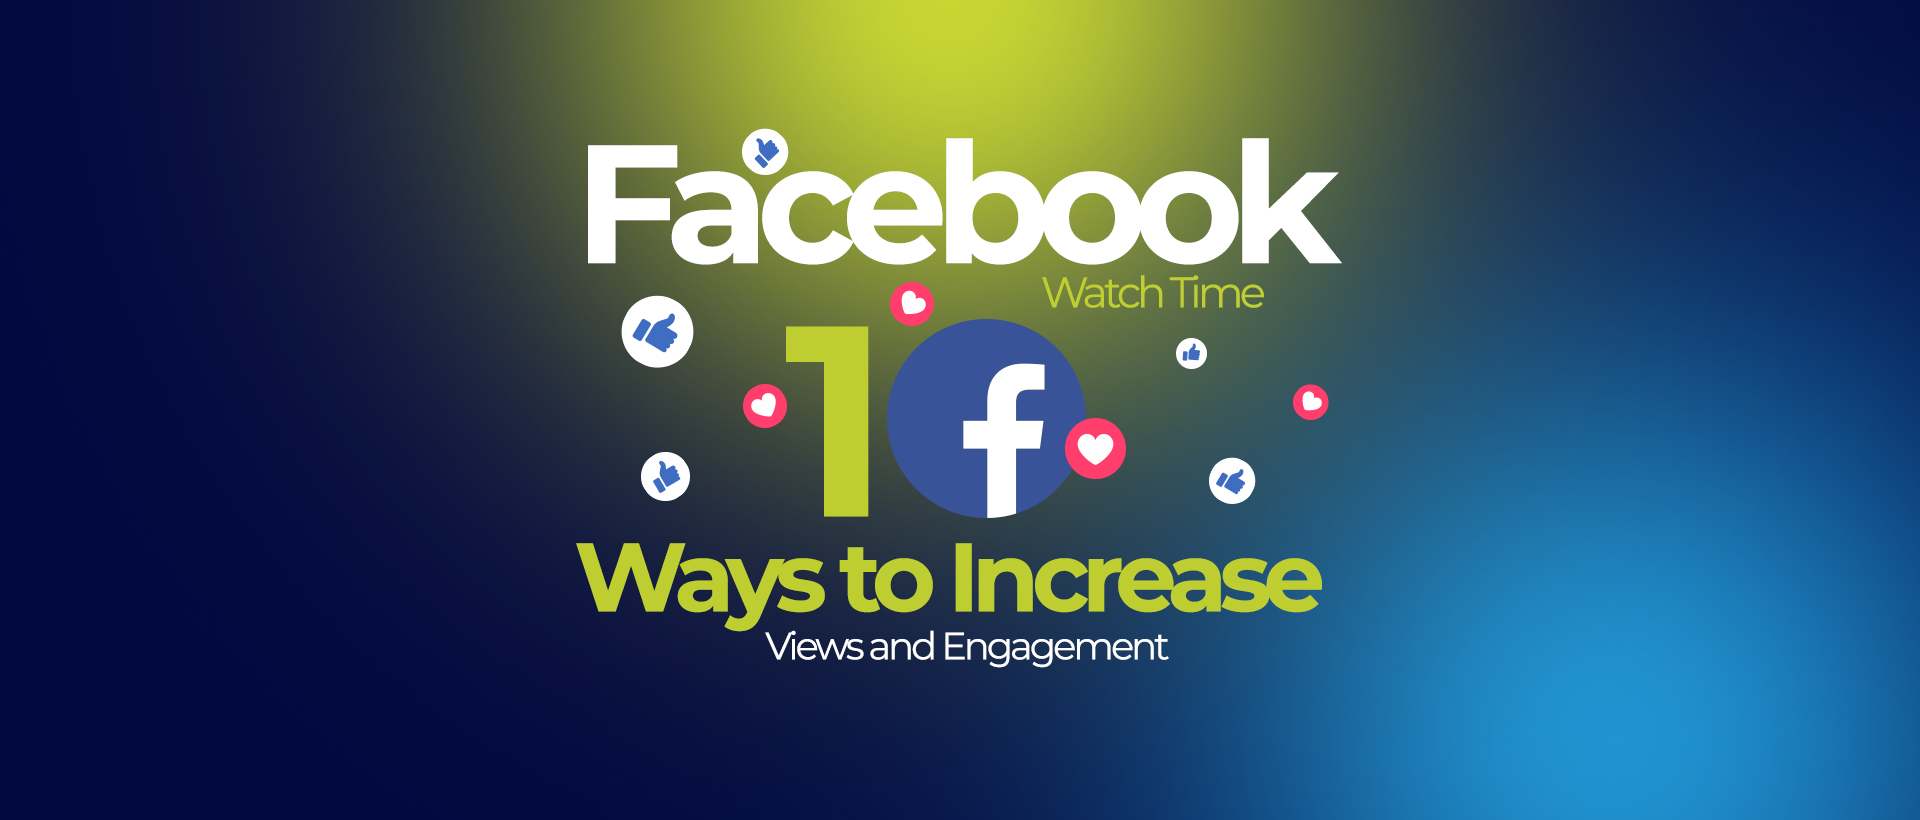 Facebook Watch Time: 1O Ways to Increase Views and Engagement